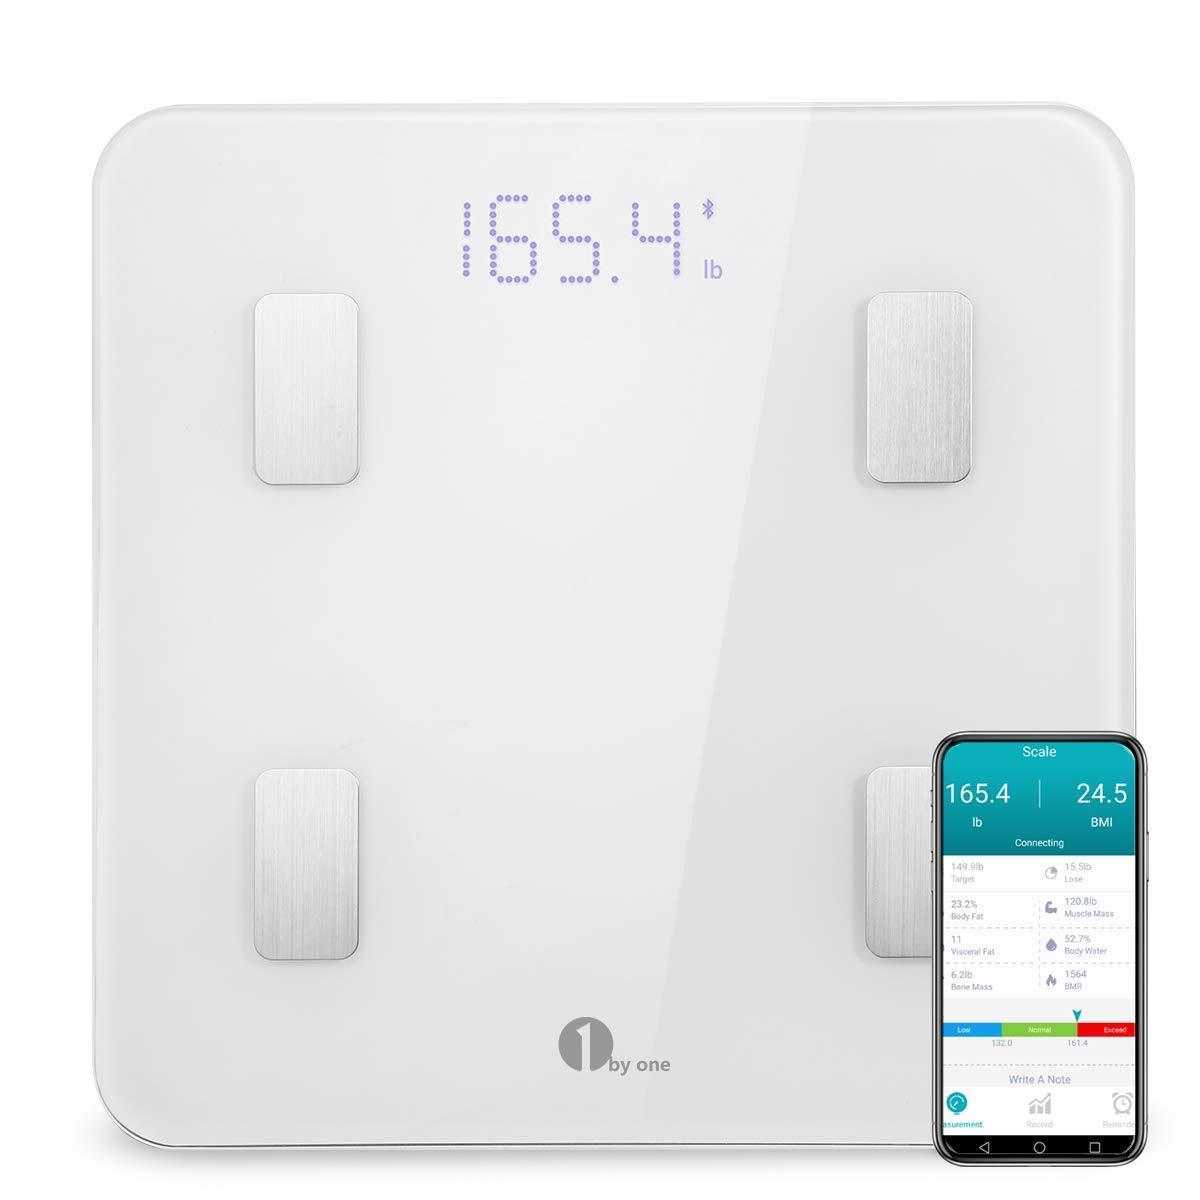 1byone Body Fat Scale with iOS and Android App Smart Wireless Digital Bathroom Scale for Body Weight, Body Fat, Water, Muscle Mass, BMI, BMR, Bone Mass and Visceral Fat, White